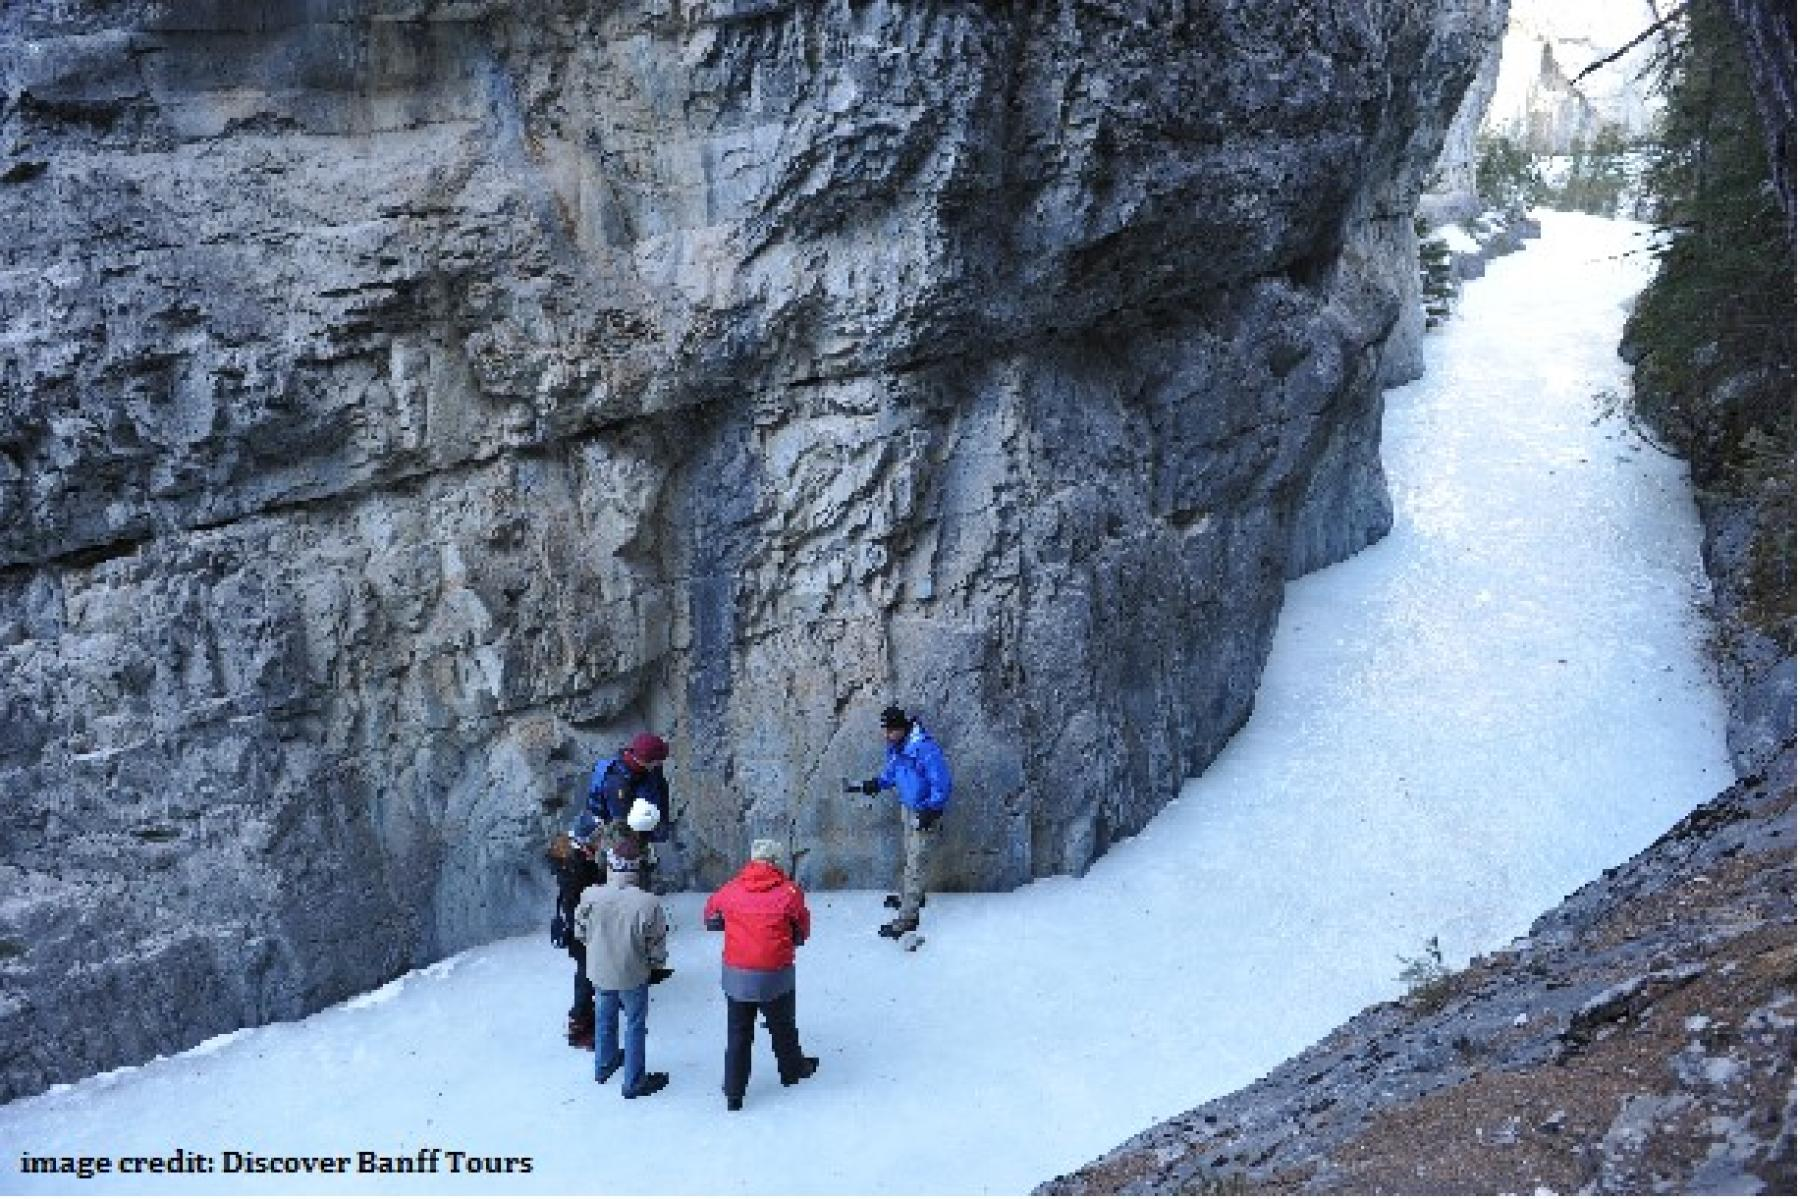 Introduction to Ice Climbing plus Winter Fun in the Canadian Rockies! - 10D / 9N starting at Canadian Rockies